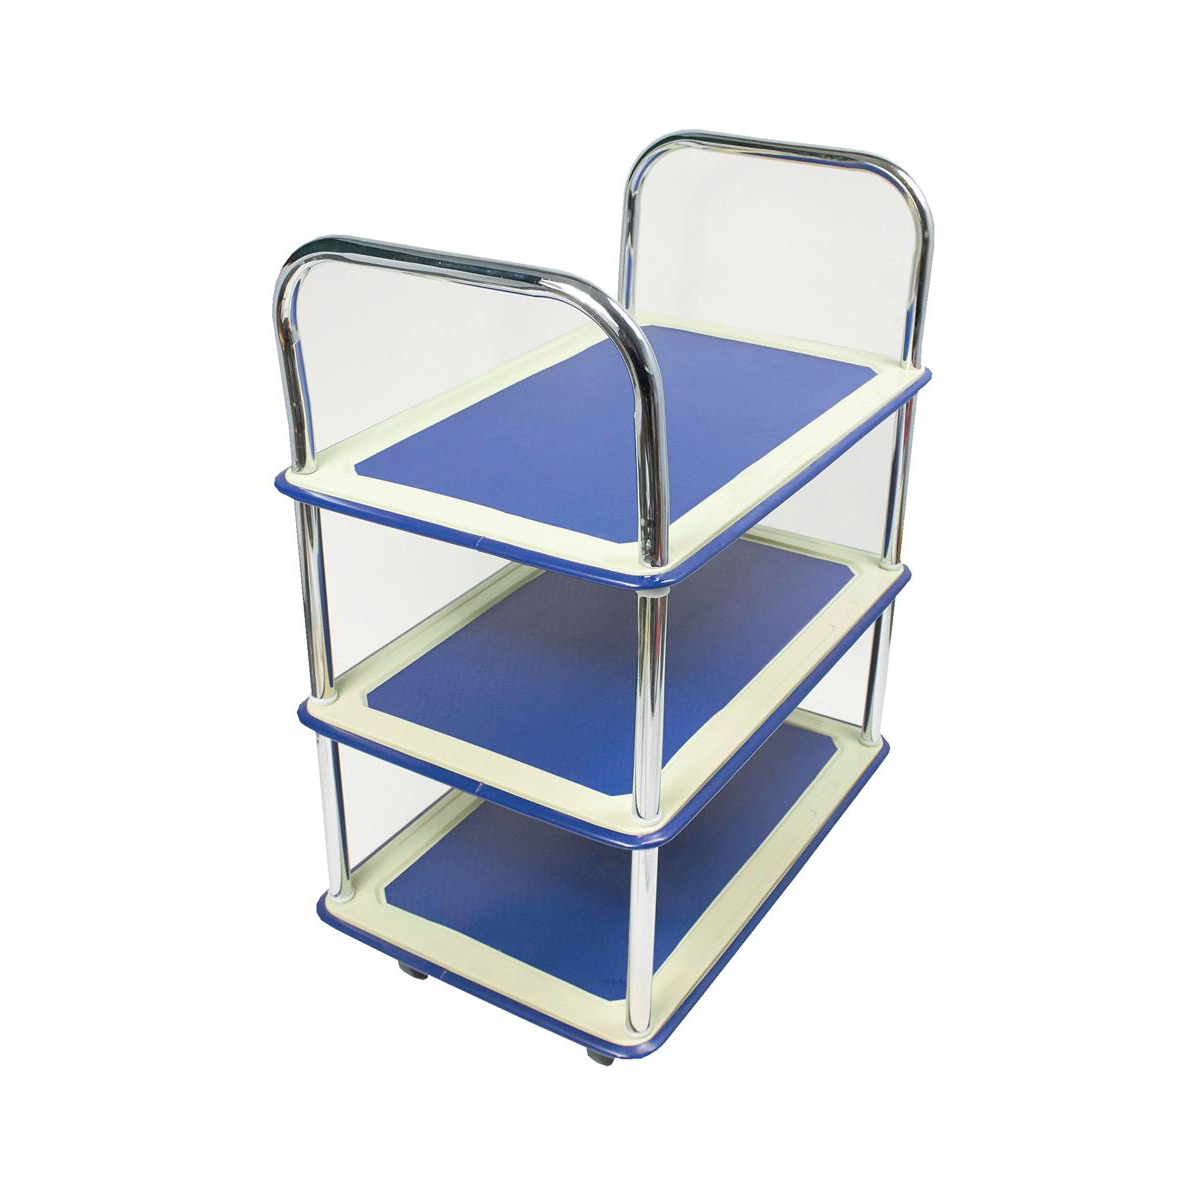 Image for 5 Star Facilities Trolley Lightweight Steel Frame 3 Shelf Capacity 120kg Chrome W470xD725xH950mm